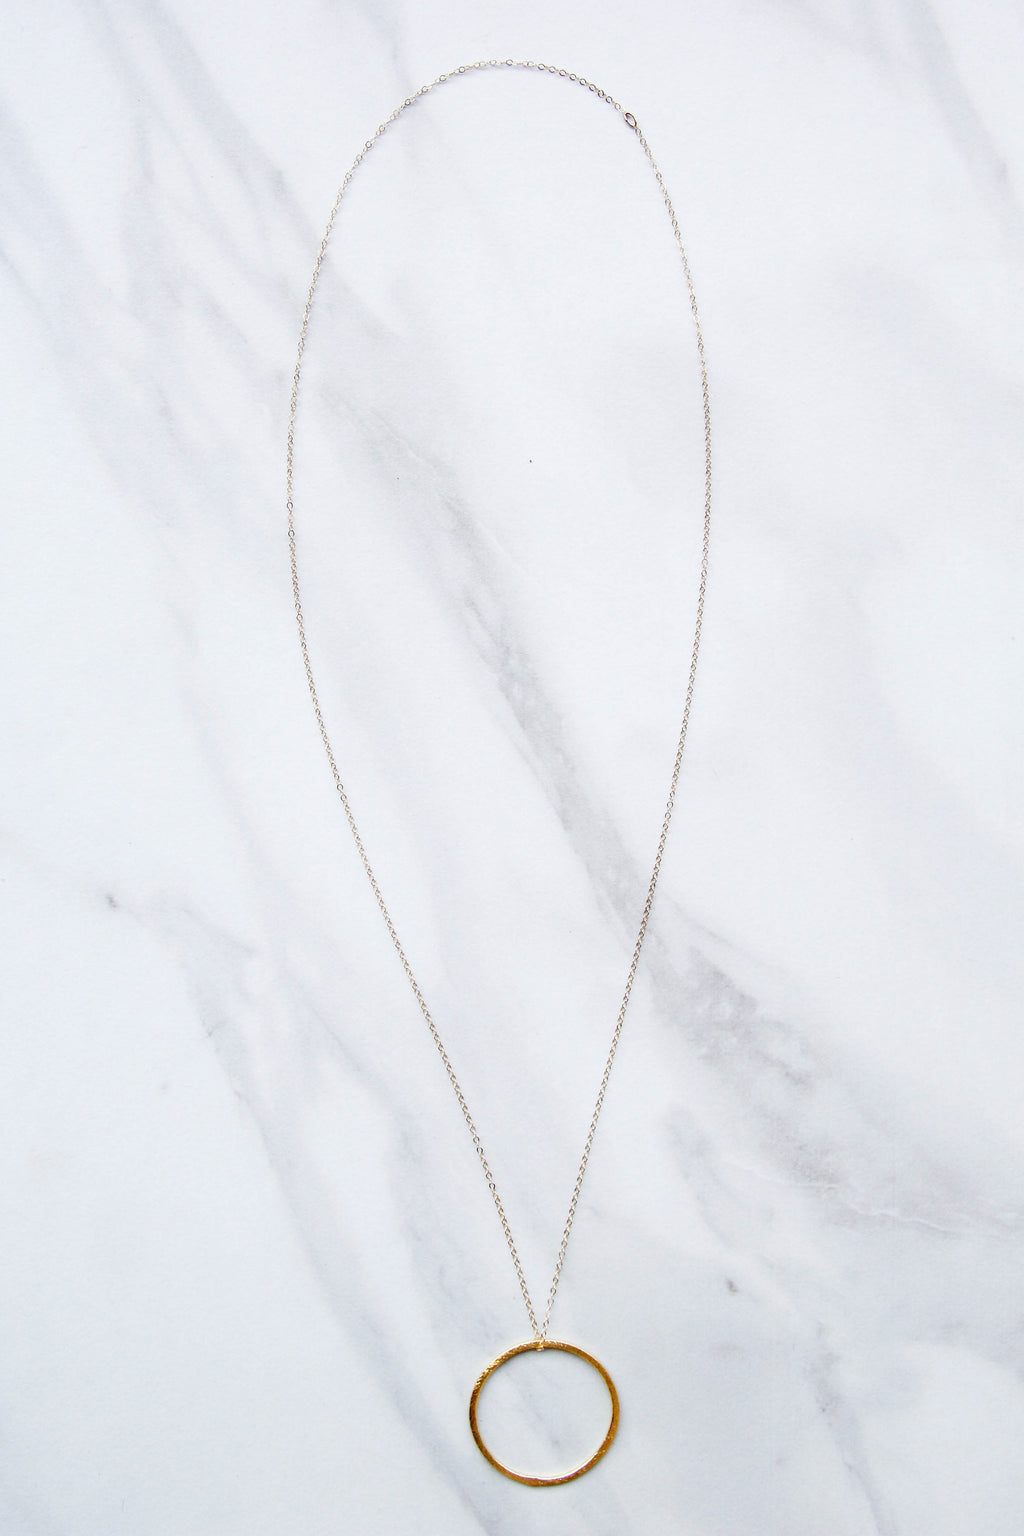 Nikki Smith Full Circle Gold Necklace